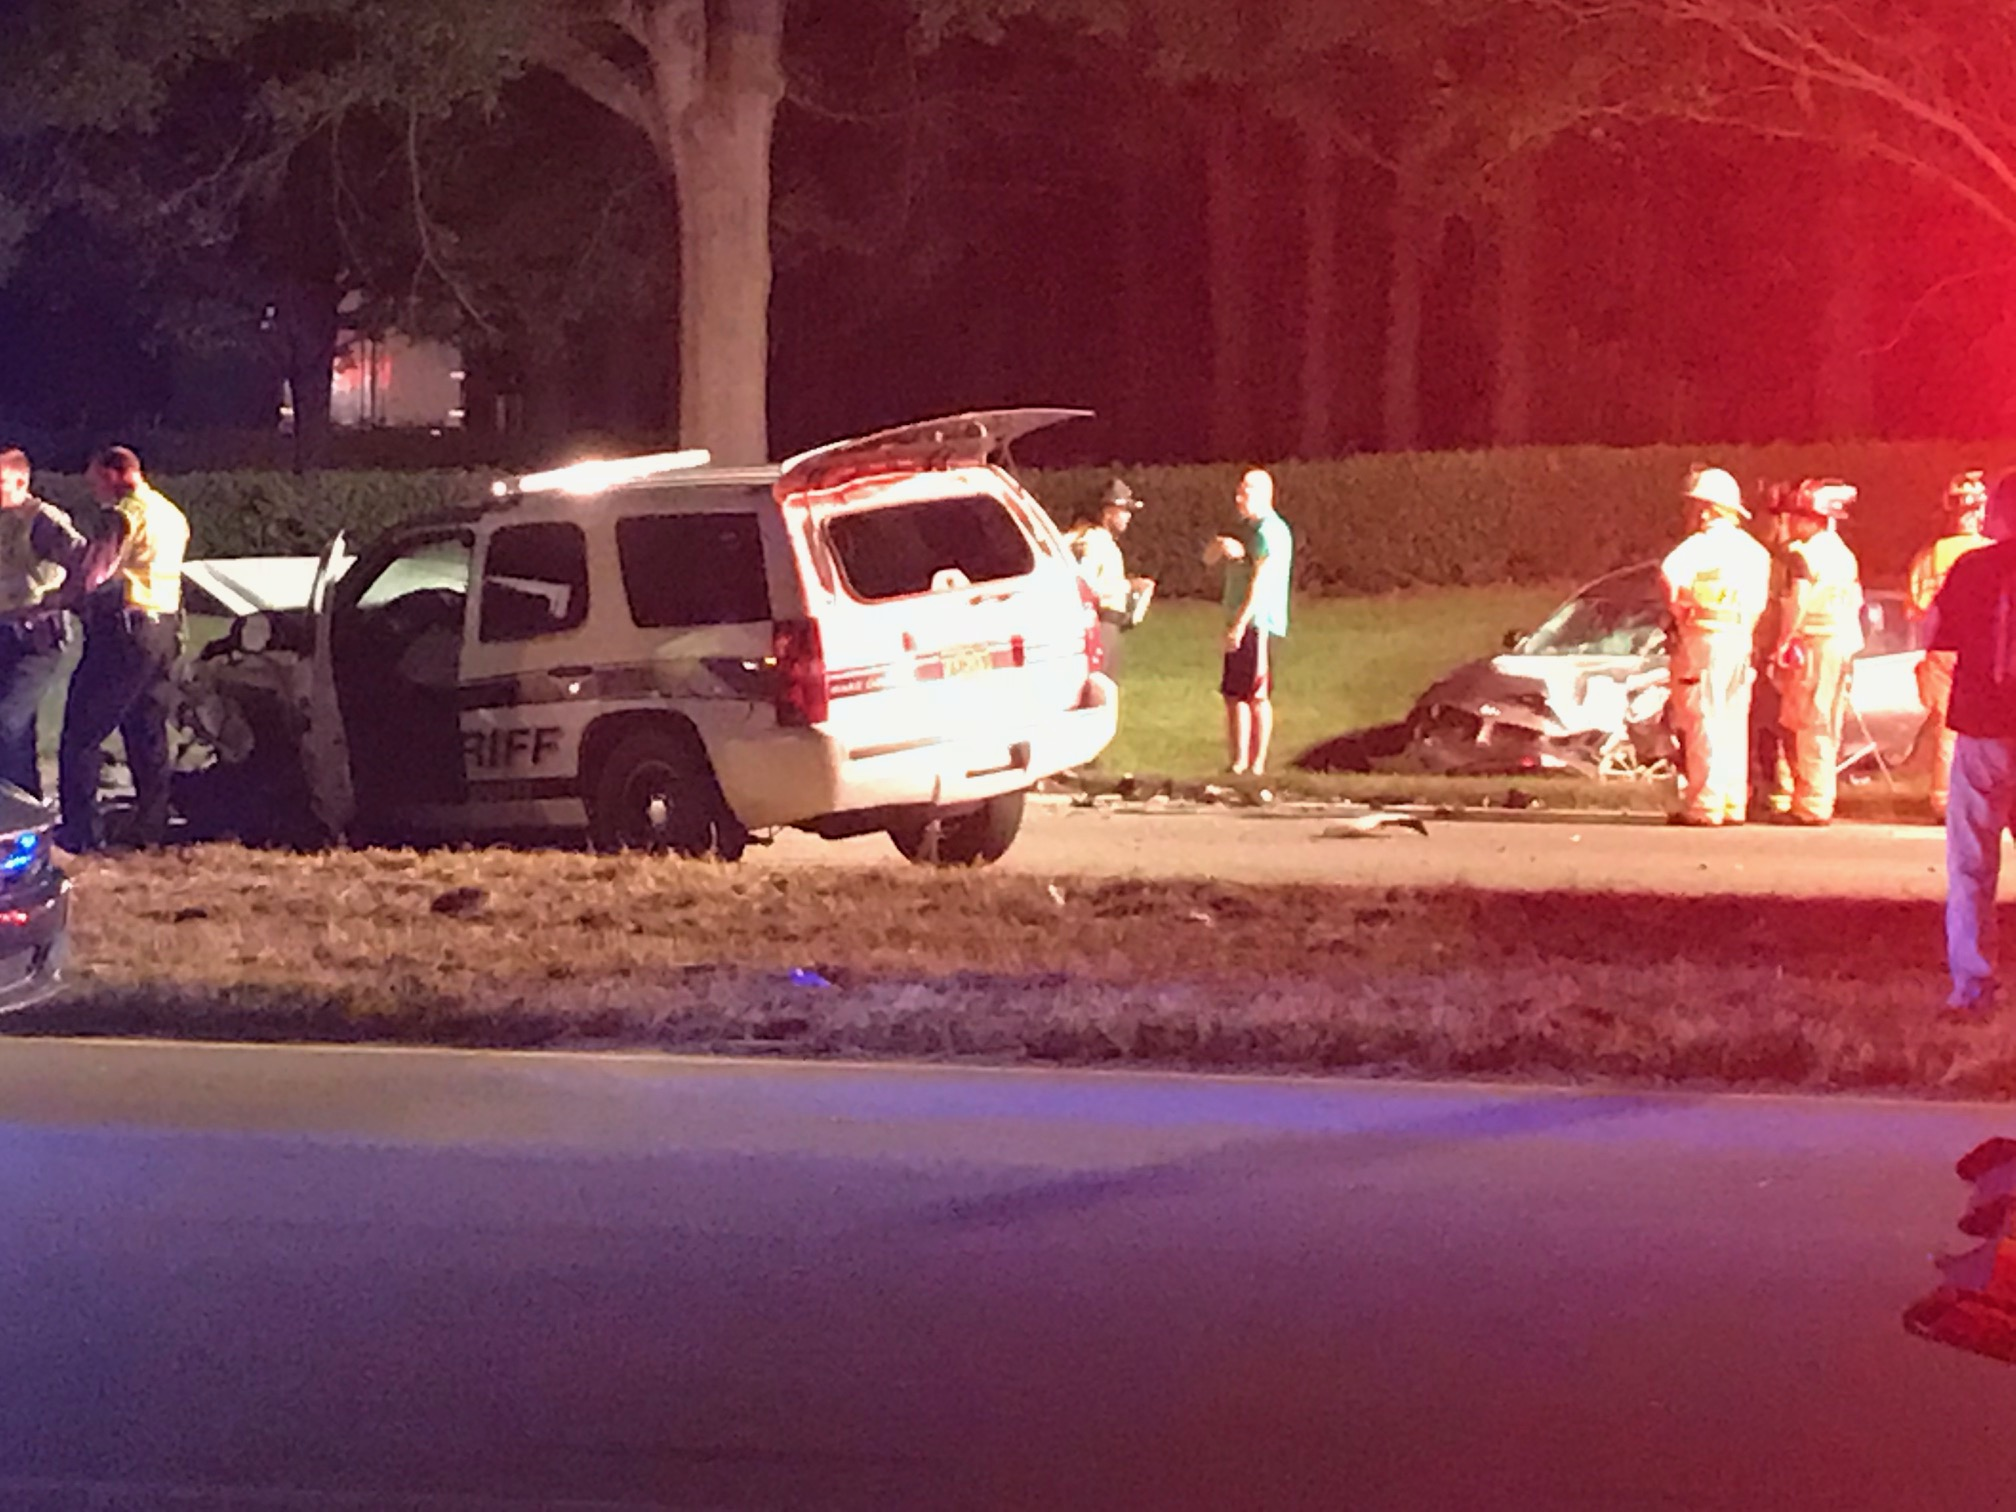 """<div class=""""meta image-caption""""><div class=""""origin-logo origin-image wtvd""""><span>WTVD</span></div><span class=""""caption-text"""">Emergency crews respond to the scene of a two-vehicle crash that left a Wake County deputy and another driver injured Tuesday night. (Robert Judson)</span></div>"""